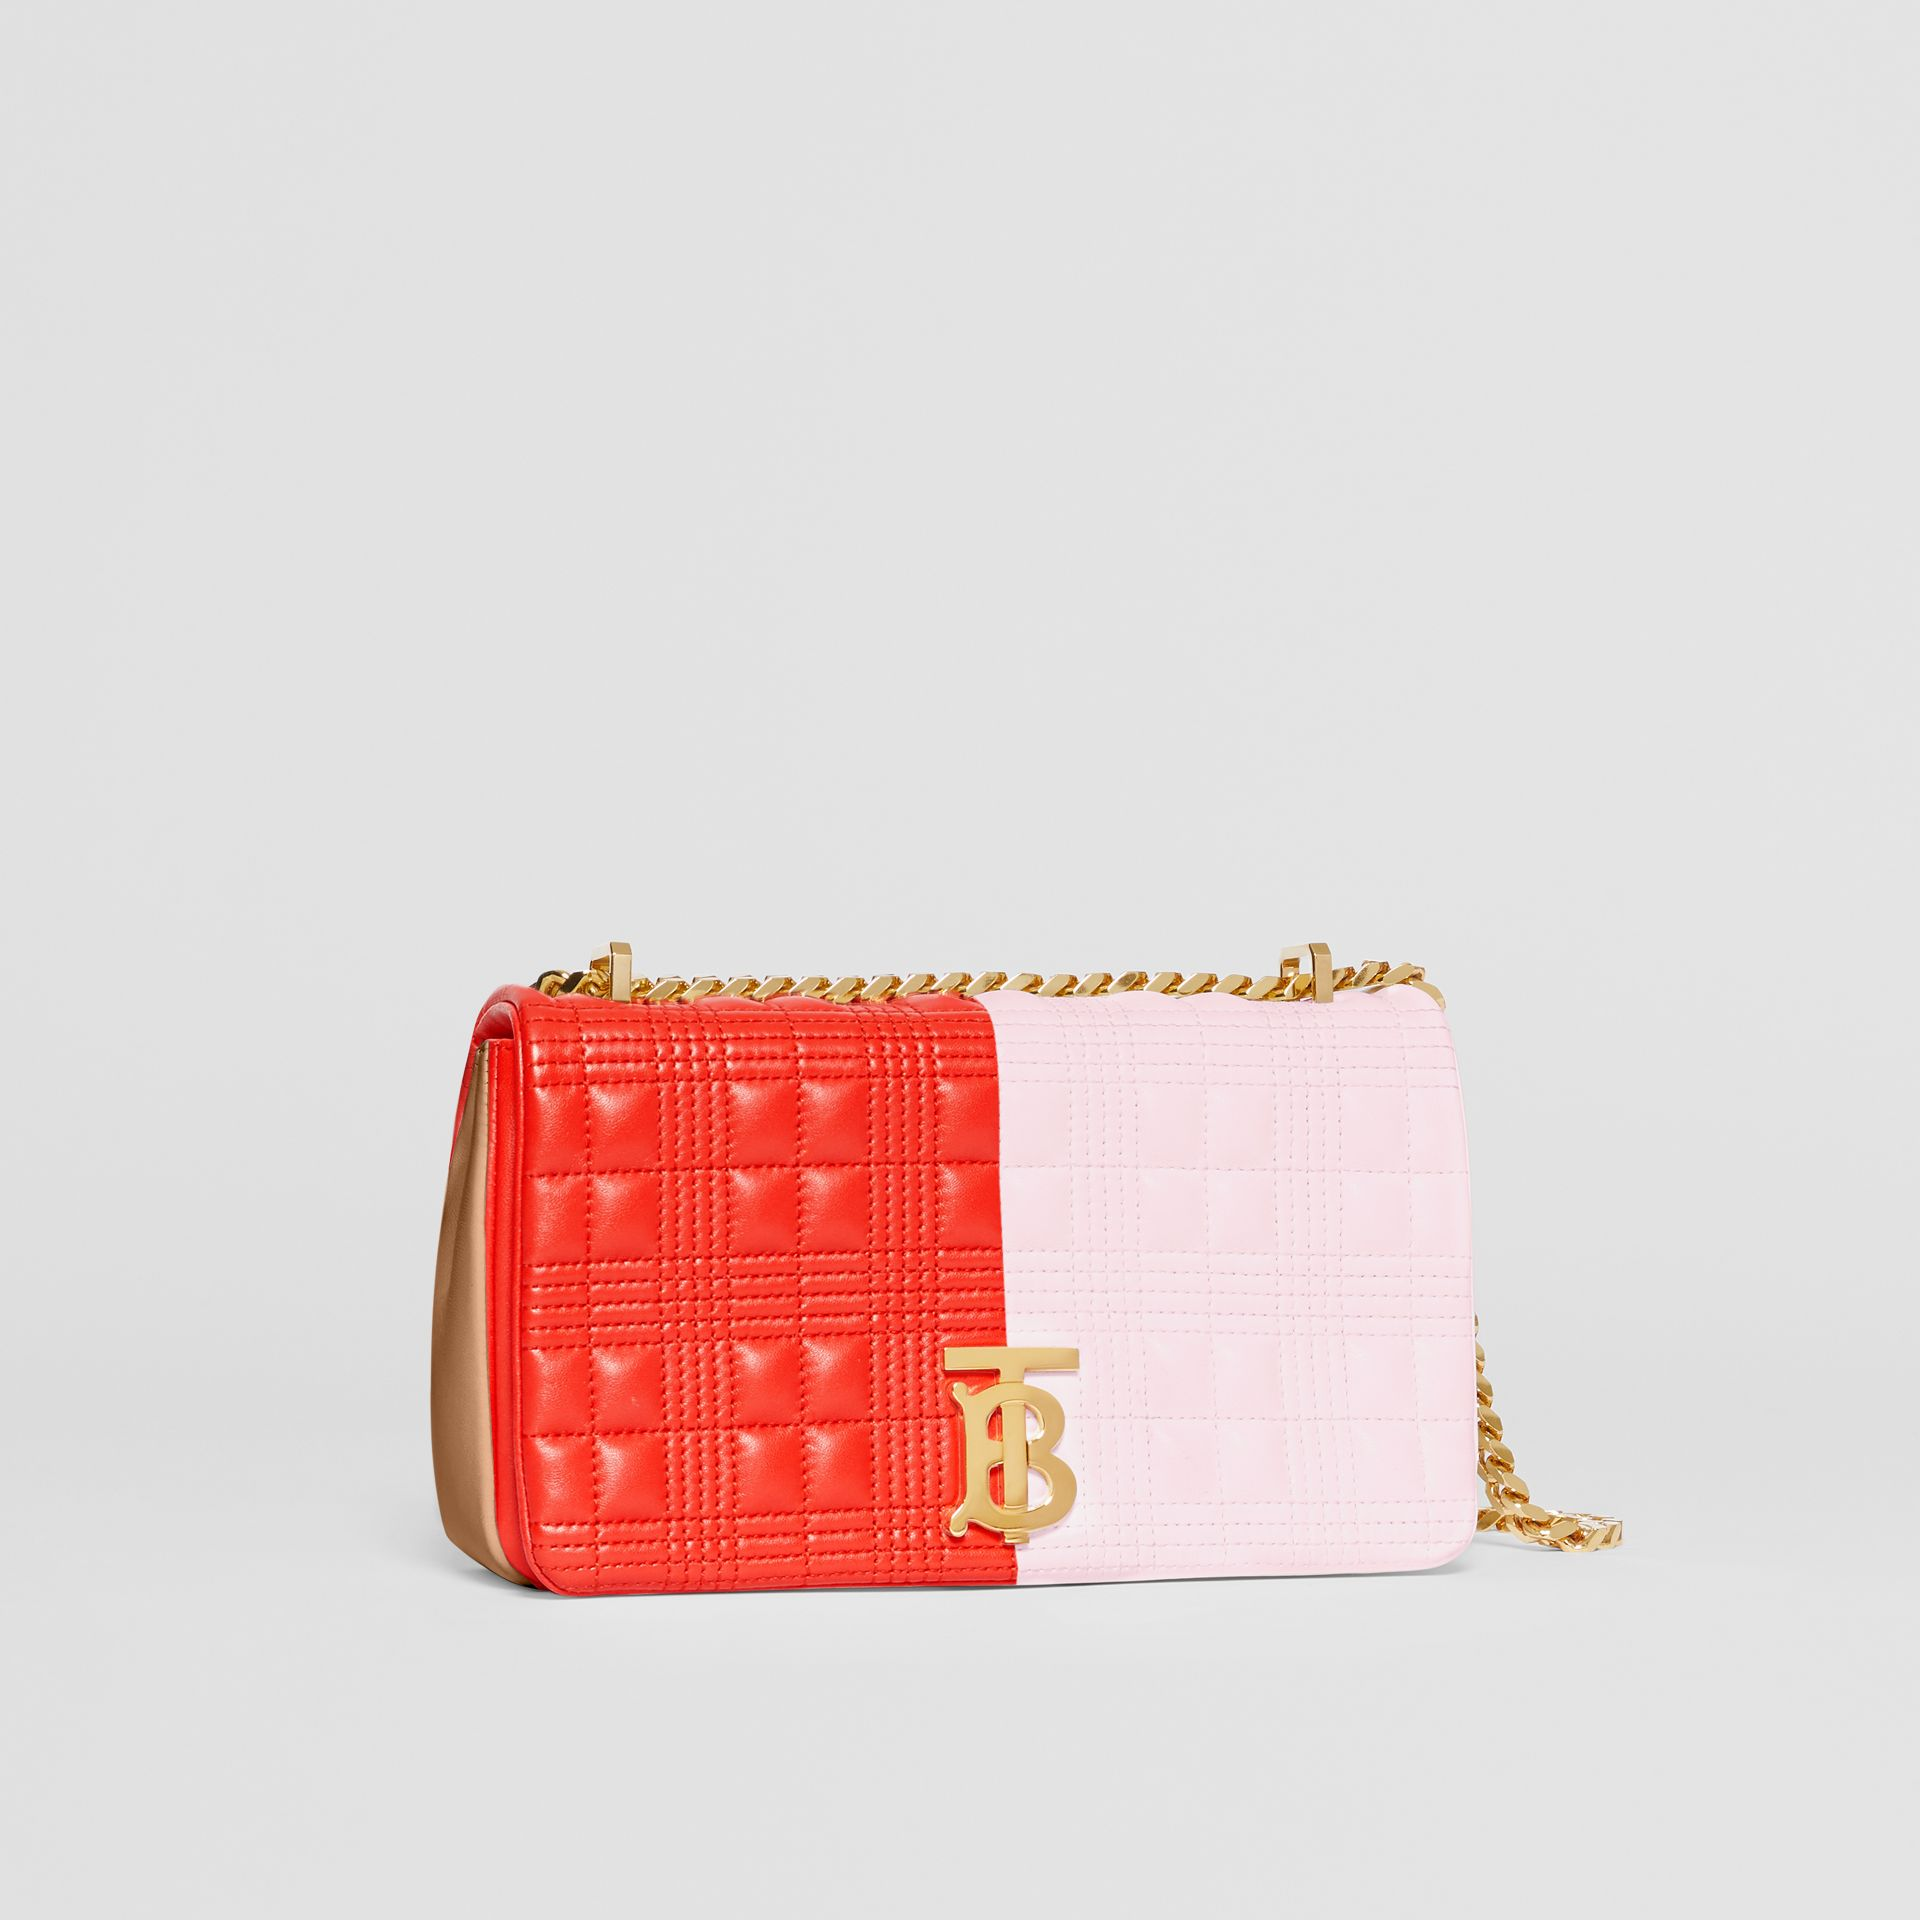 Small Quilted Tri-tone Lambskin Lola Bag in Red/pink/camel - Women | Burberry - gallery image 4